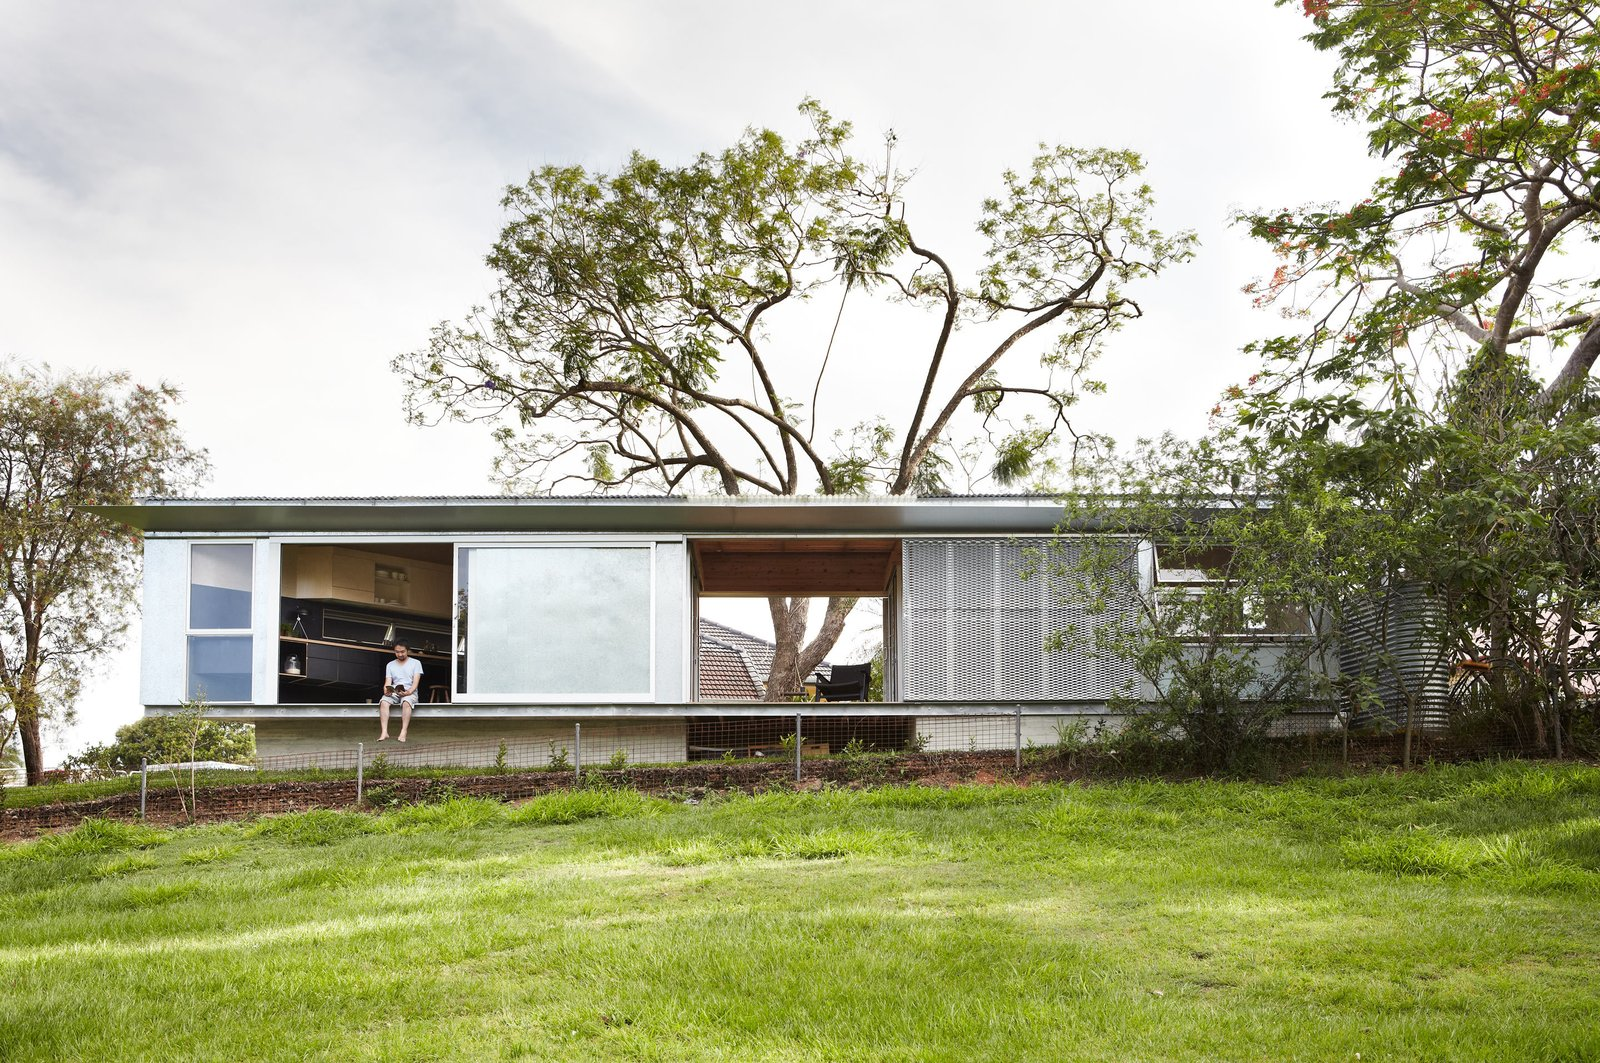 Exterior, Metal Roof Material, Concrete Siding Material, House Building Type, Shed RoofLine, and Metal Siding Material  Photo 1 of 10 in A Retired Teacher's Tiny House Opens Wide to the Landscape in Brisbane, Australia